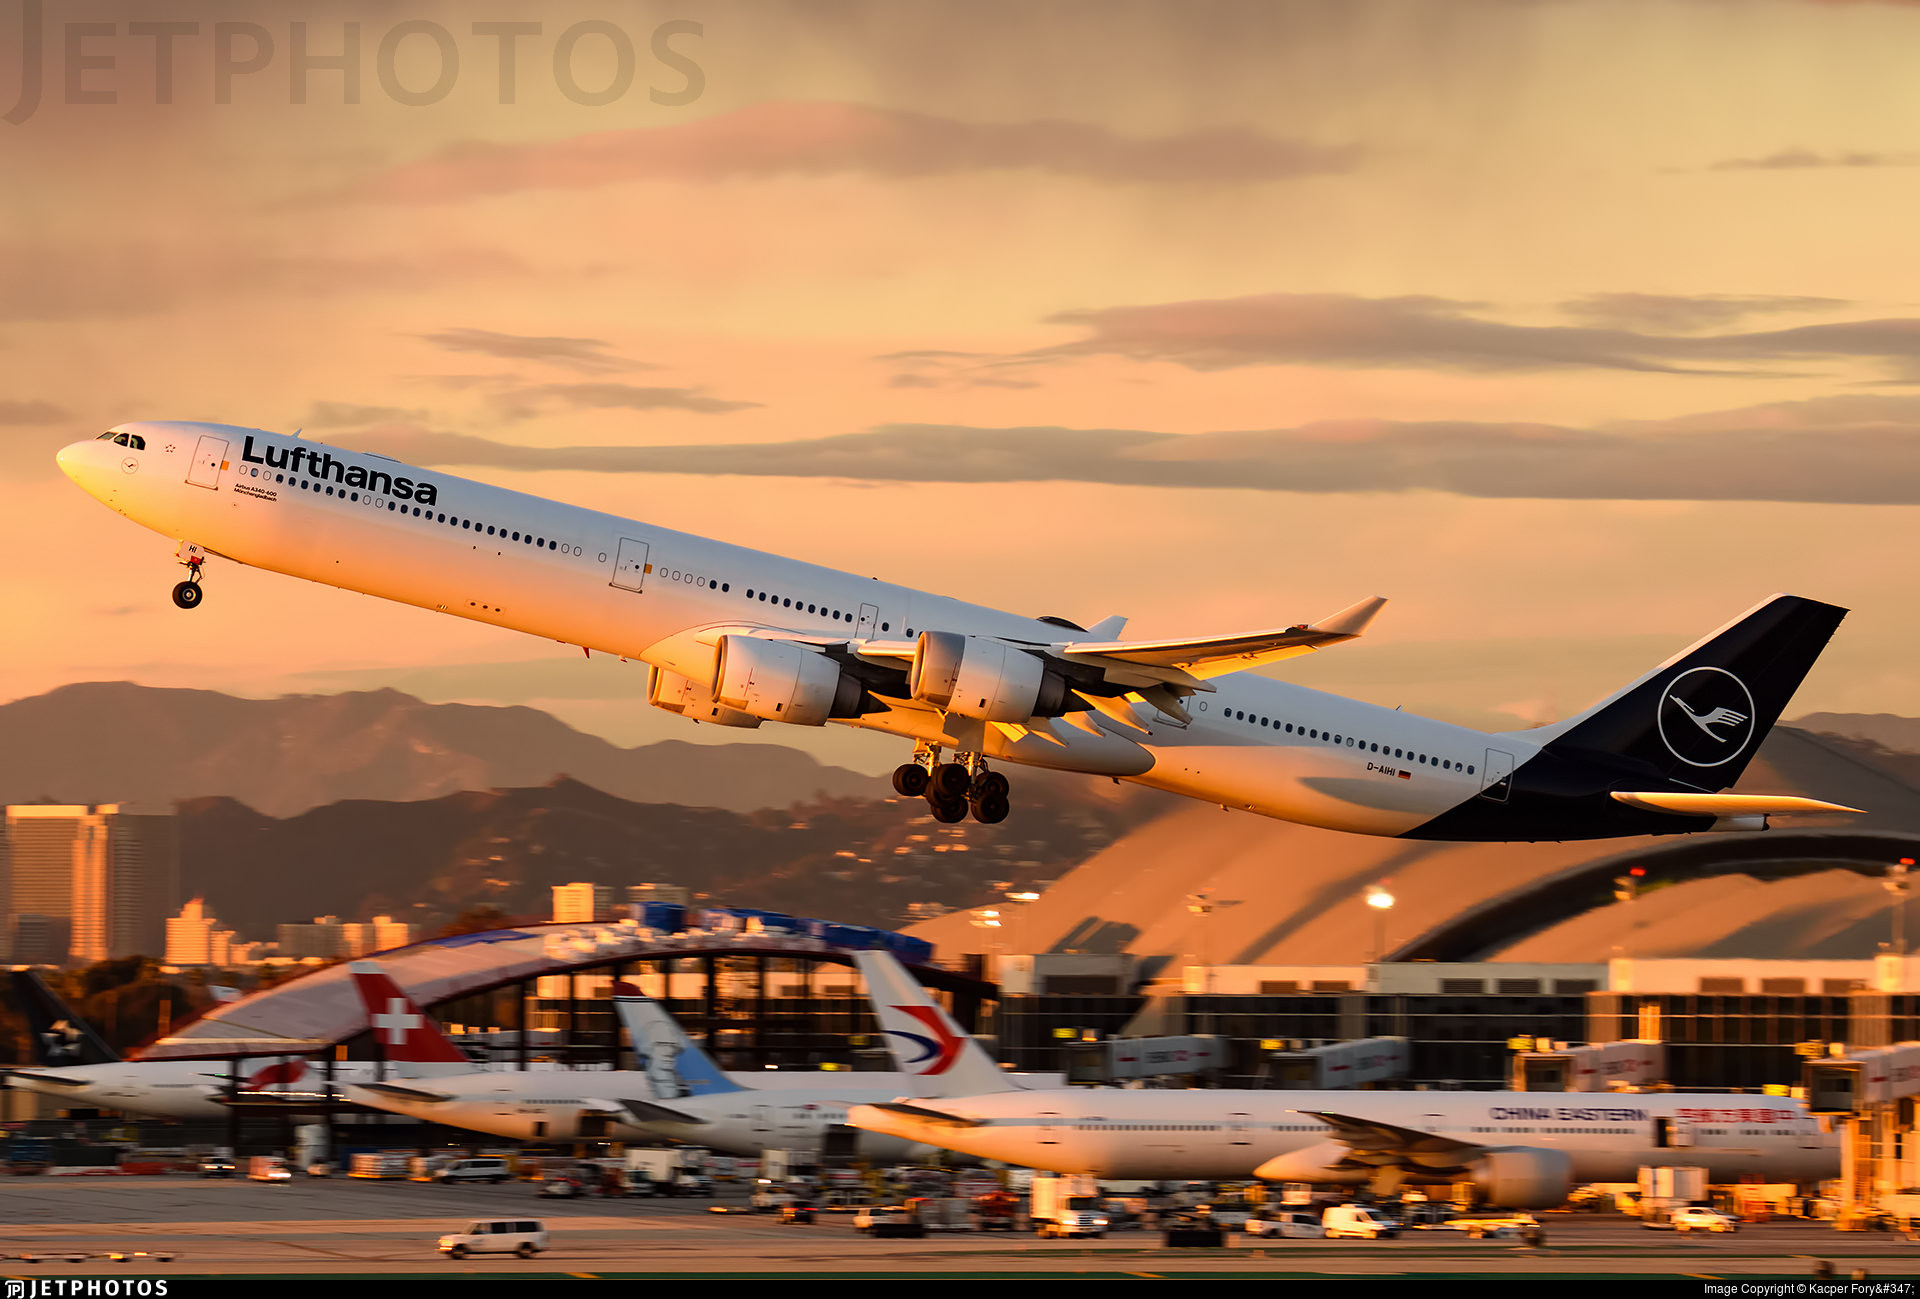 Lufthansa A340-600 departing Los Angeles